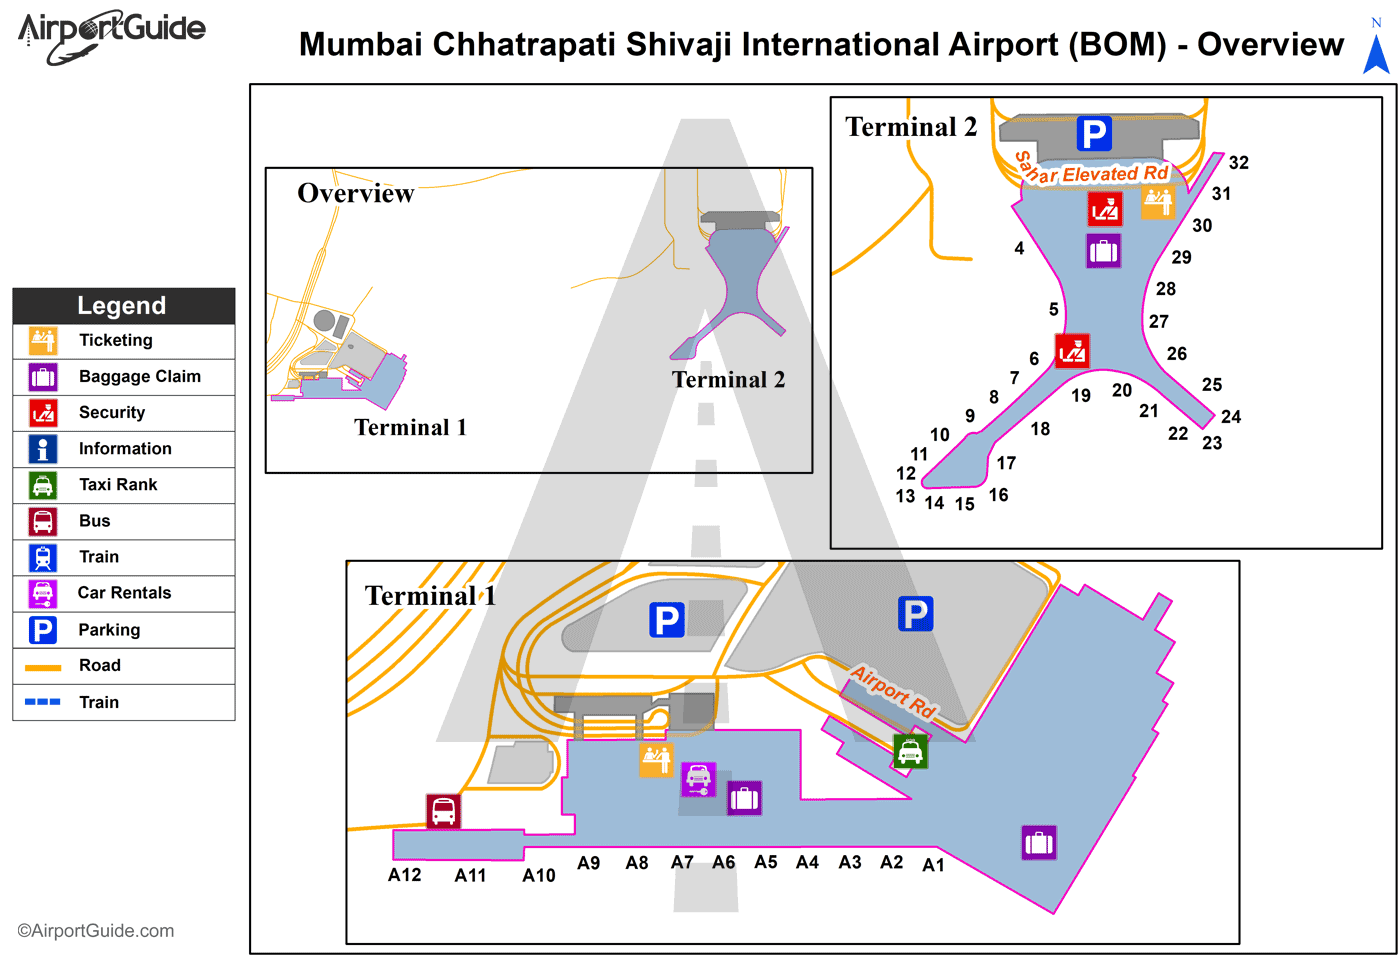 Bombay (Mumbai) - Chhatrapati Shivaji International (BOM) Airport Terminal Map - Overview